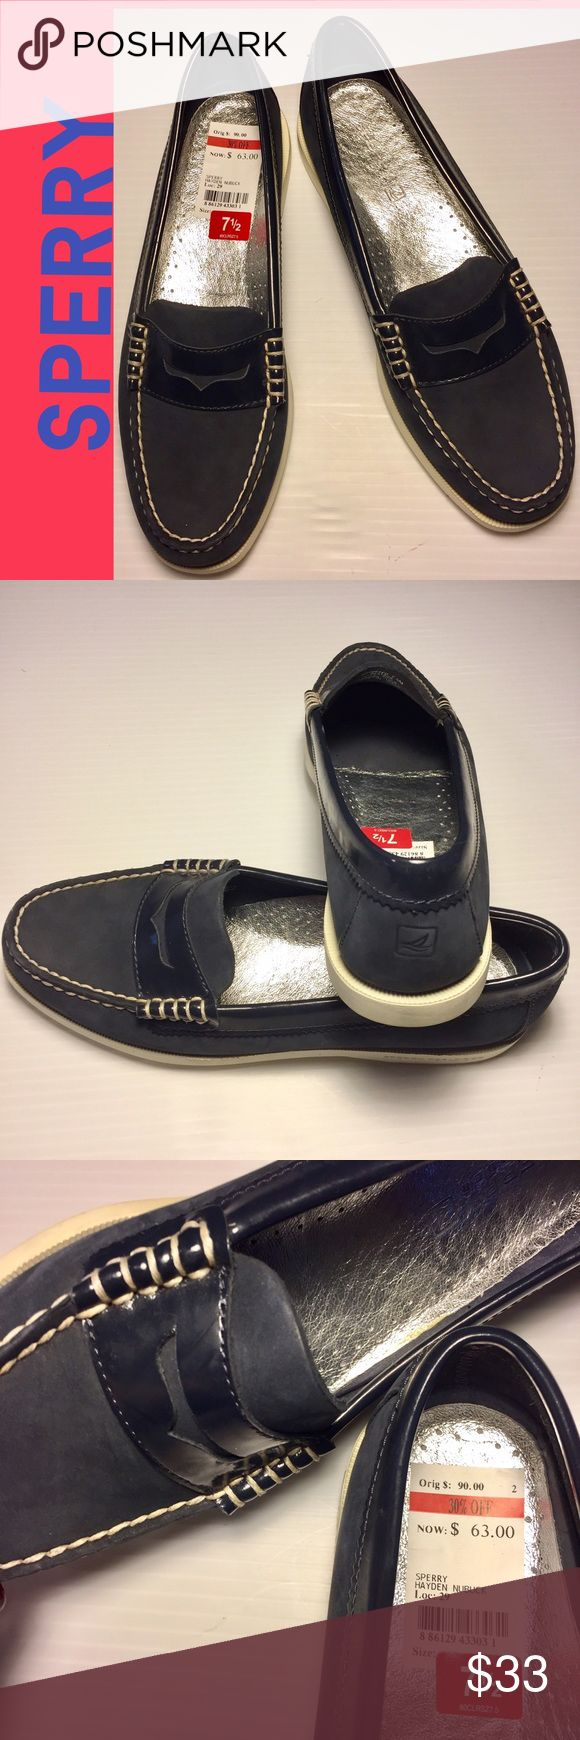 "SPERRY Top-Sider NWT Navy Blue Penny Loafer 7.5 SPERRY Top-Sider NWT New with Tags Navy Blue Penny Loafers ""Hayden Nubuck"". Casual slip-on. Leather uppers. Non-Marking outsoles, excellent traction. Silver leather insoles. EVA heel cup for comfort & shock absorption. Original retail $90, sale price was $63.  Tried on but not worn, perfect condition, brand new! Size 7.5. (#236) Sperry Top-Sider Shoes Flats & Loafers"